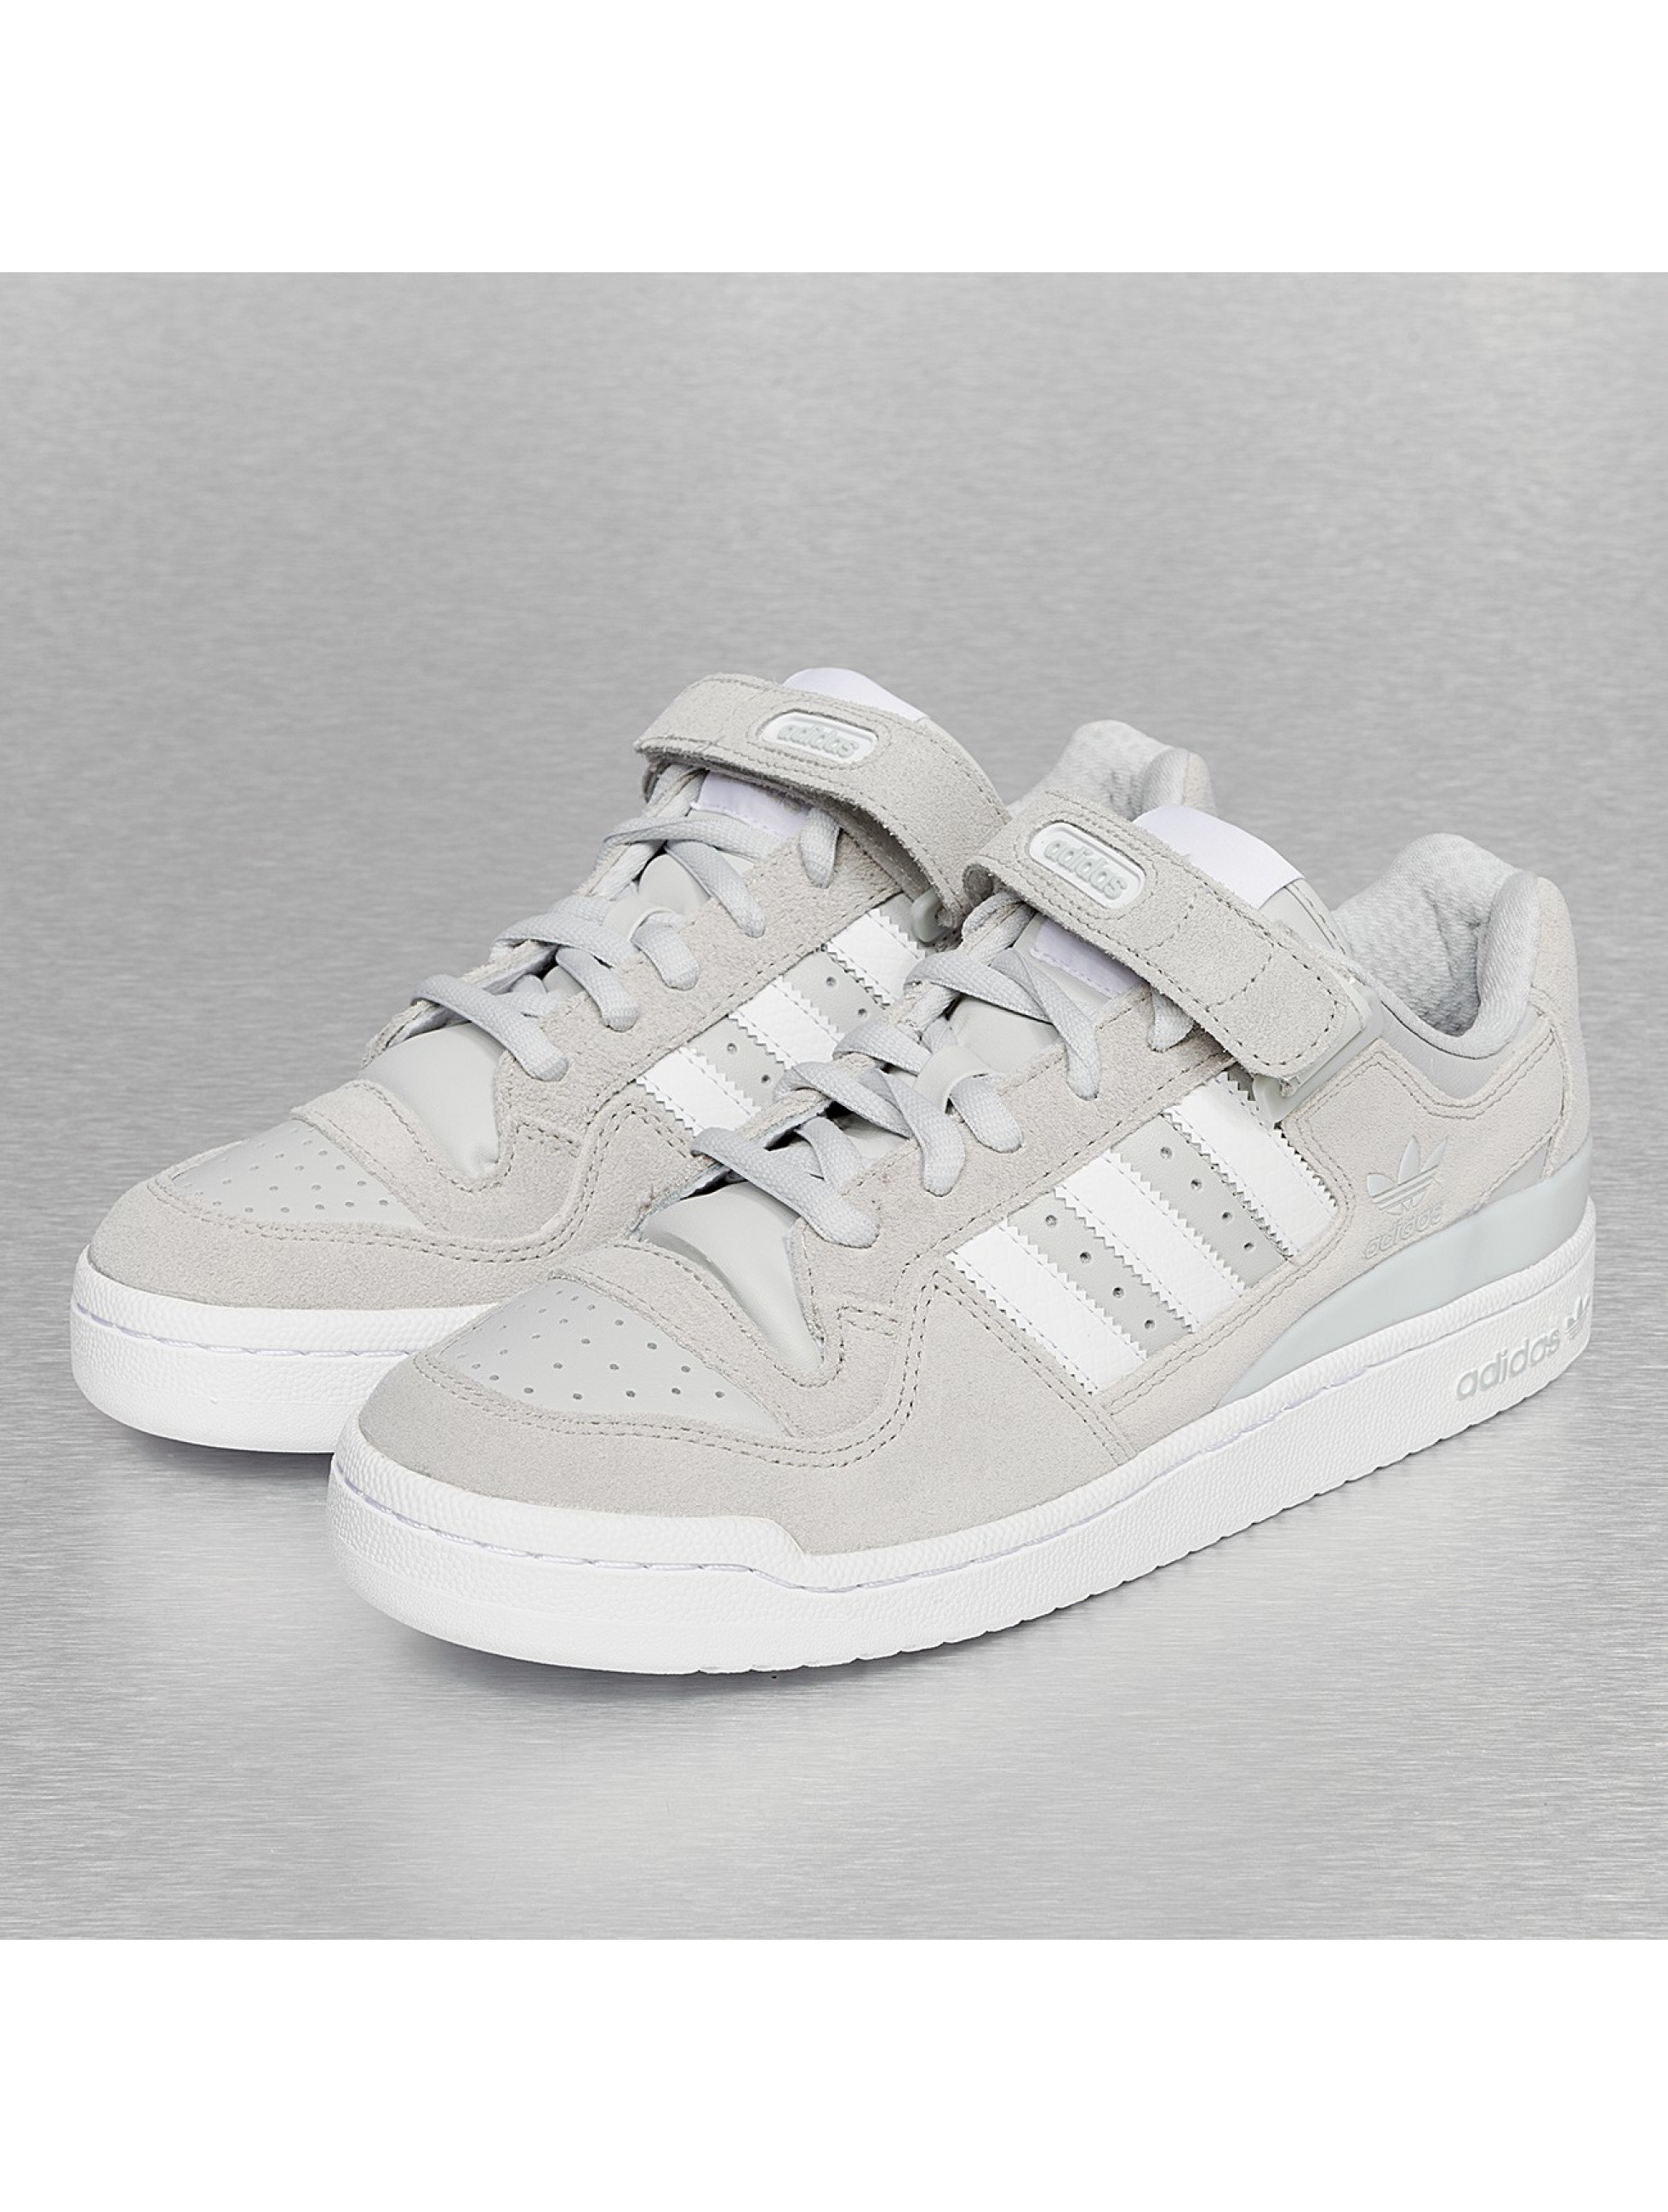 but can t decide if i cop em grey or all white 61687d2c1